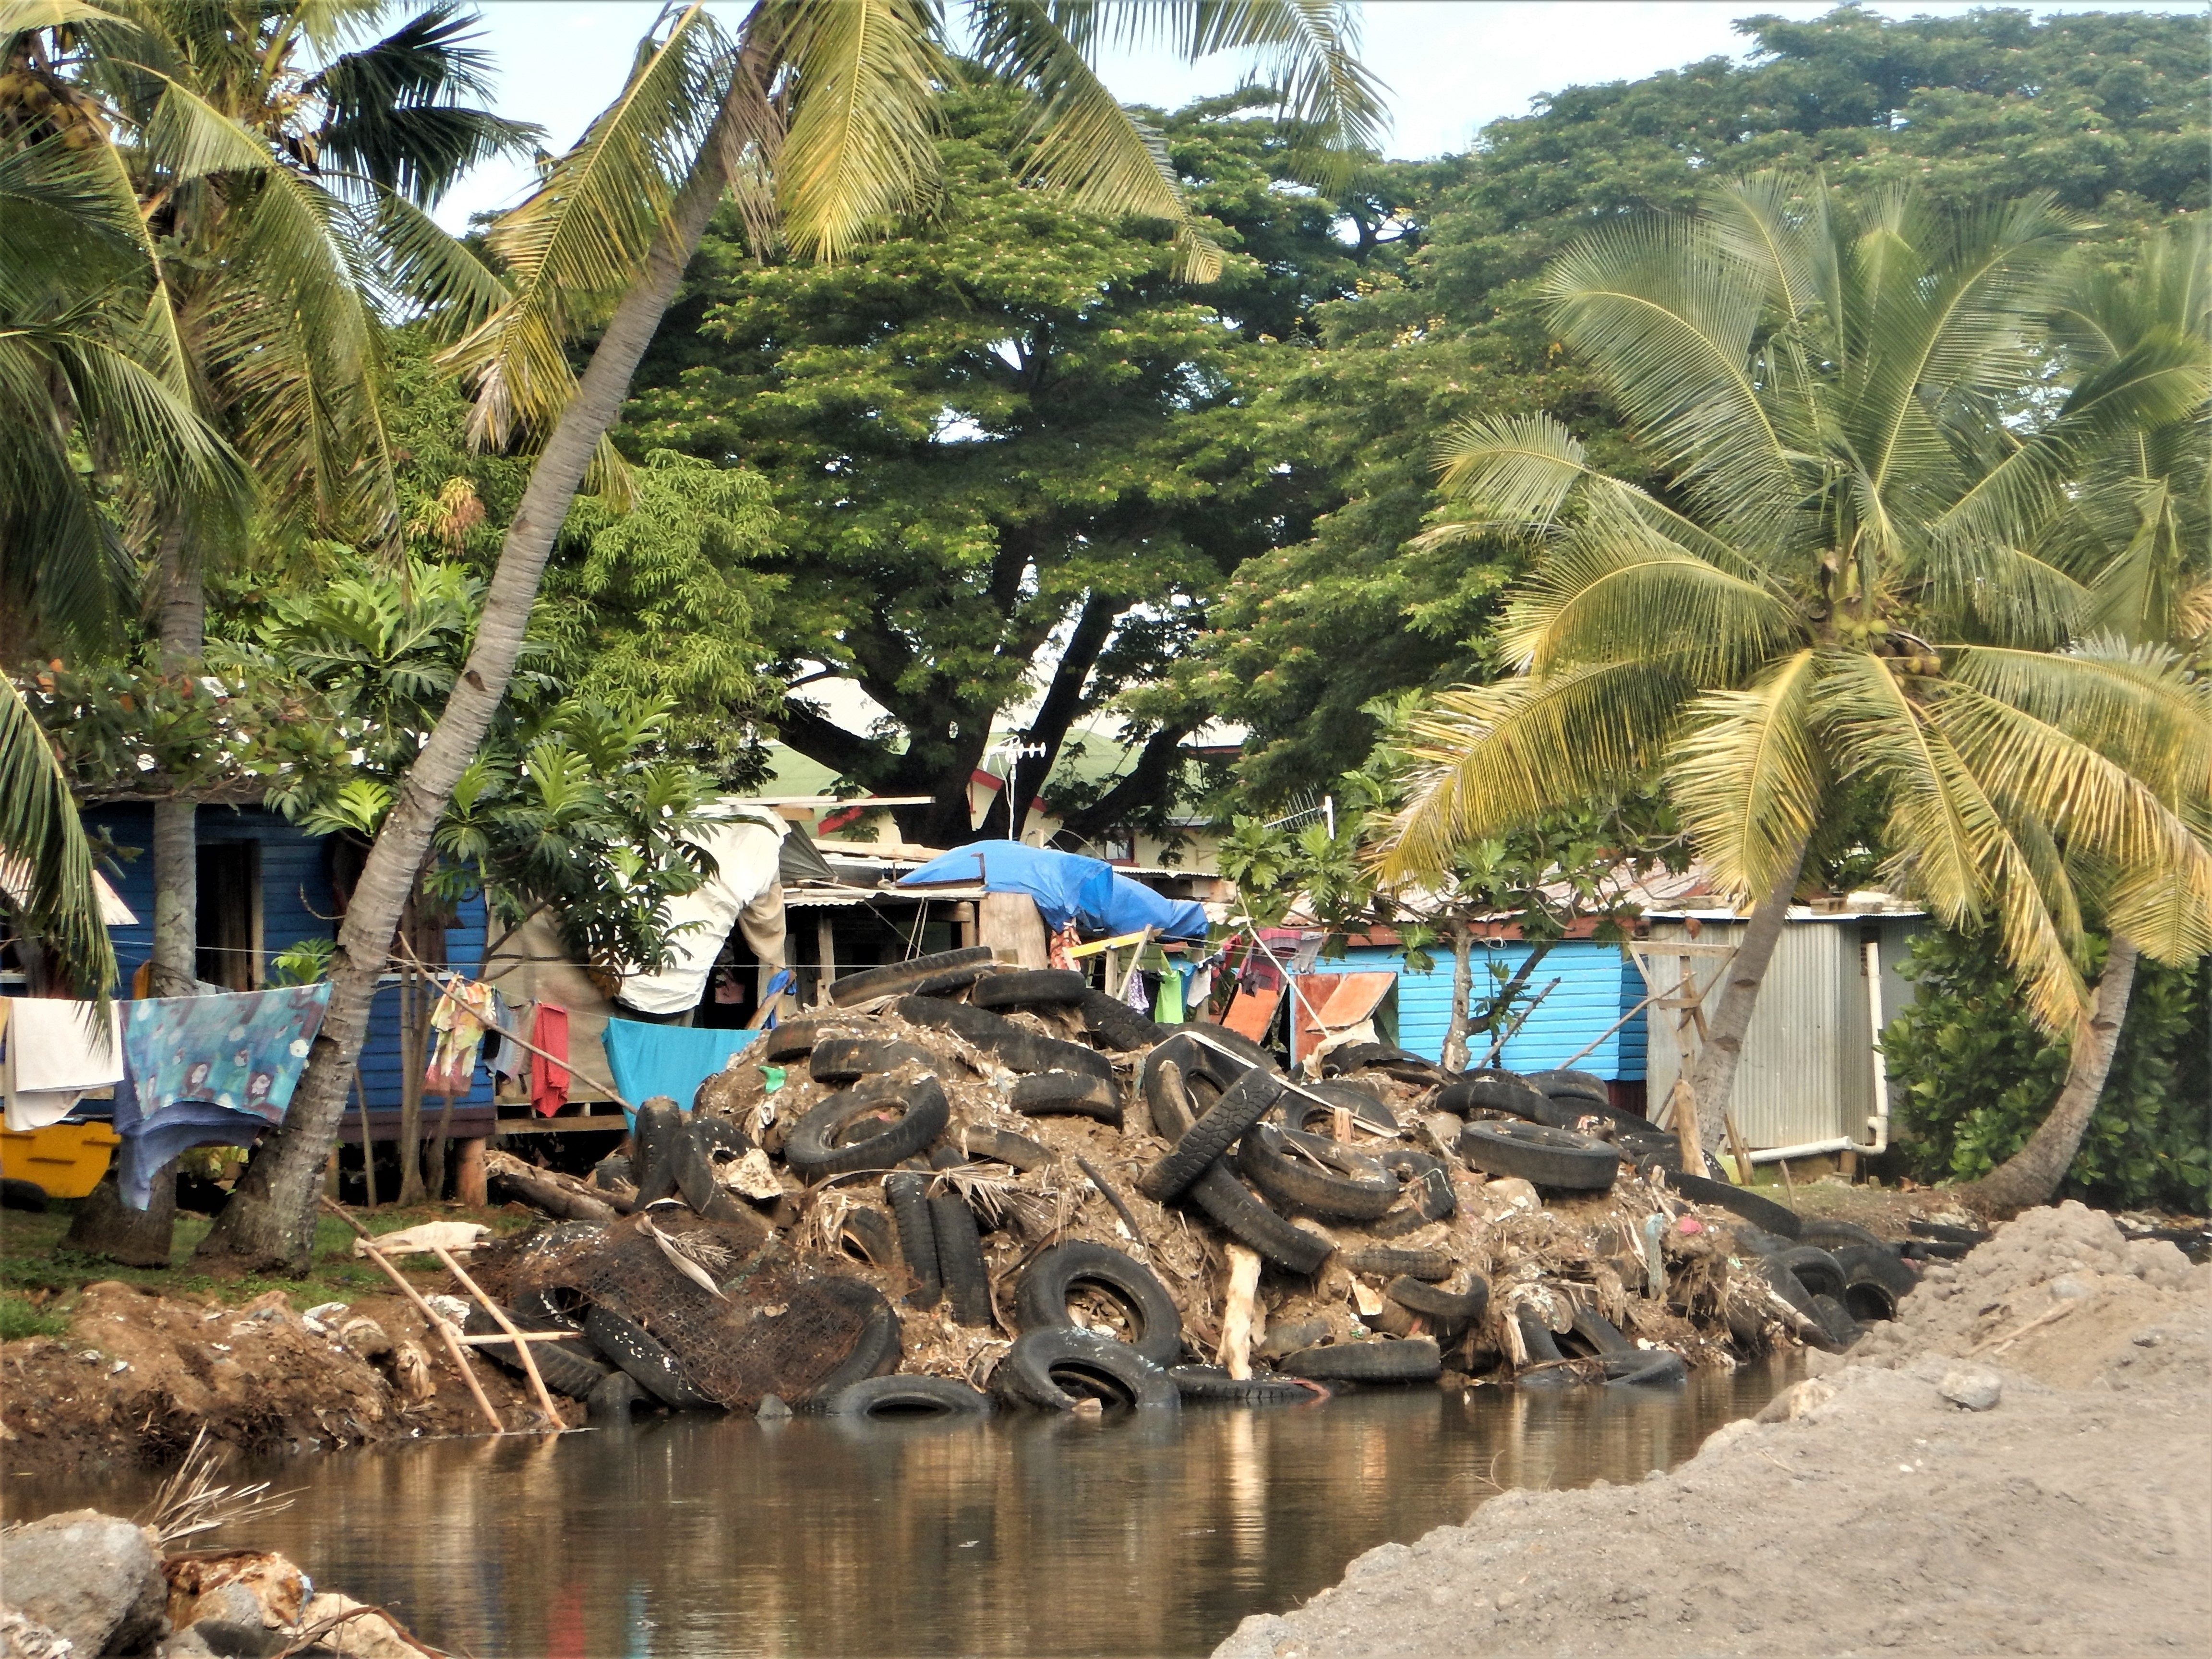 Stacking tires along the shore in Taiperia, Fiji helps prevent coastal erosion.